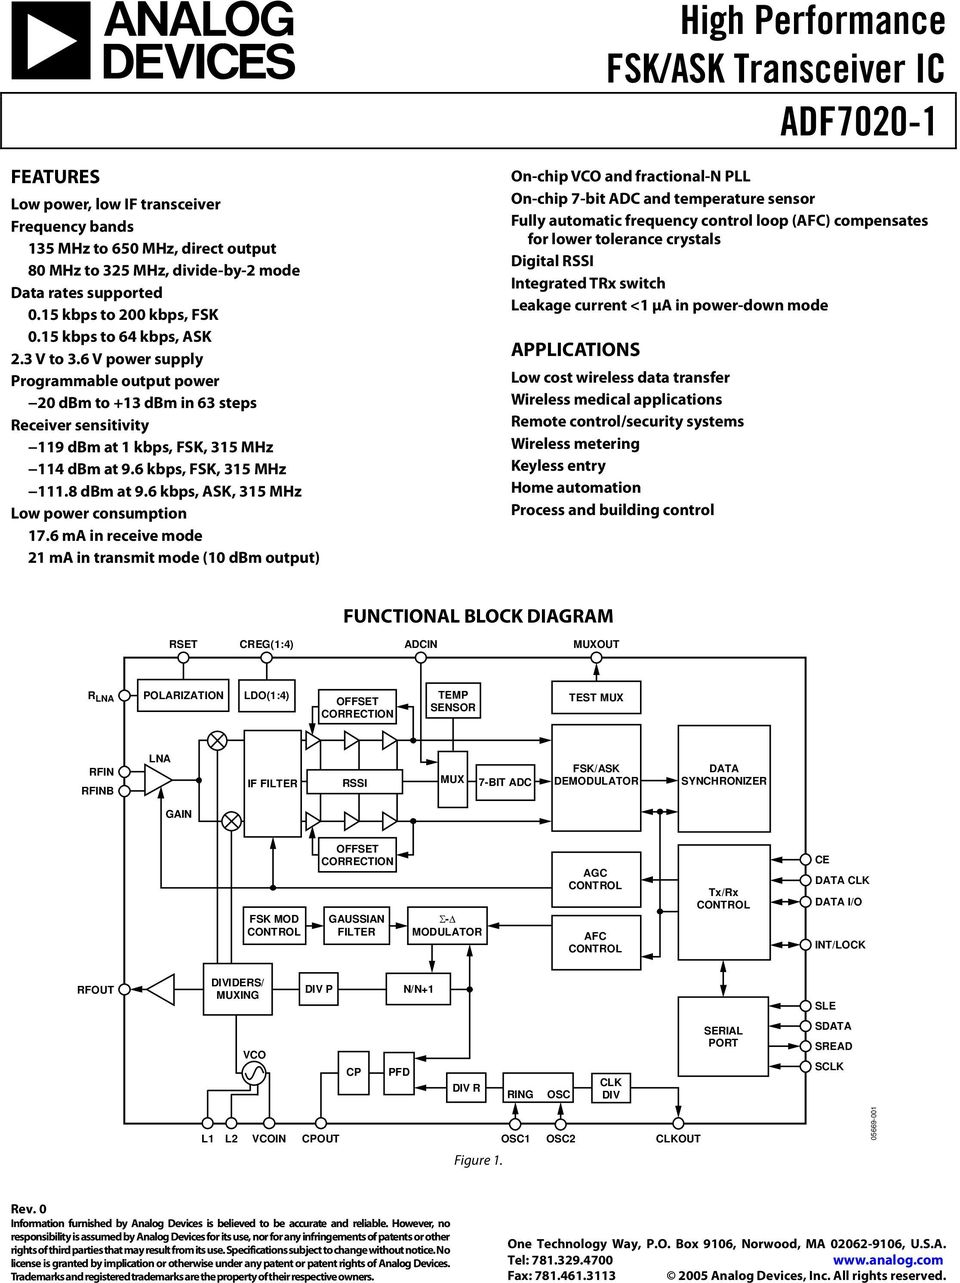 High Performance Fsk Ask Transceiver Ic Adf Pdf Radio Remote Control Using Dtmf Receiver At 96 Kbps 35 Mhz Low Power Consumption 76 Ma In Receive Mode